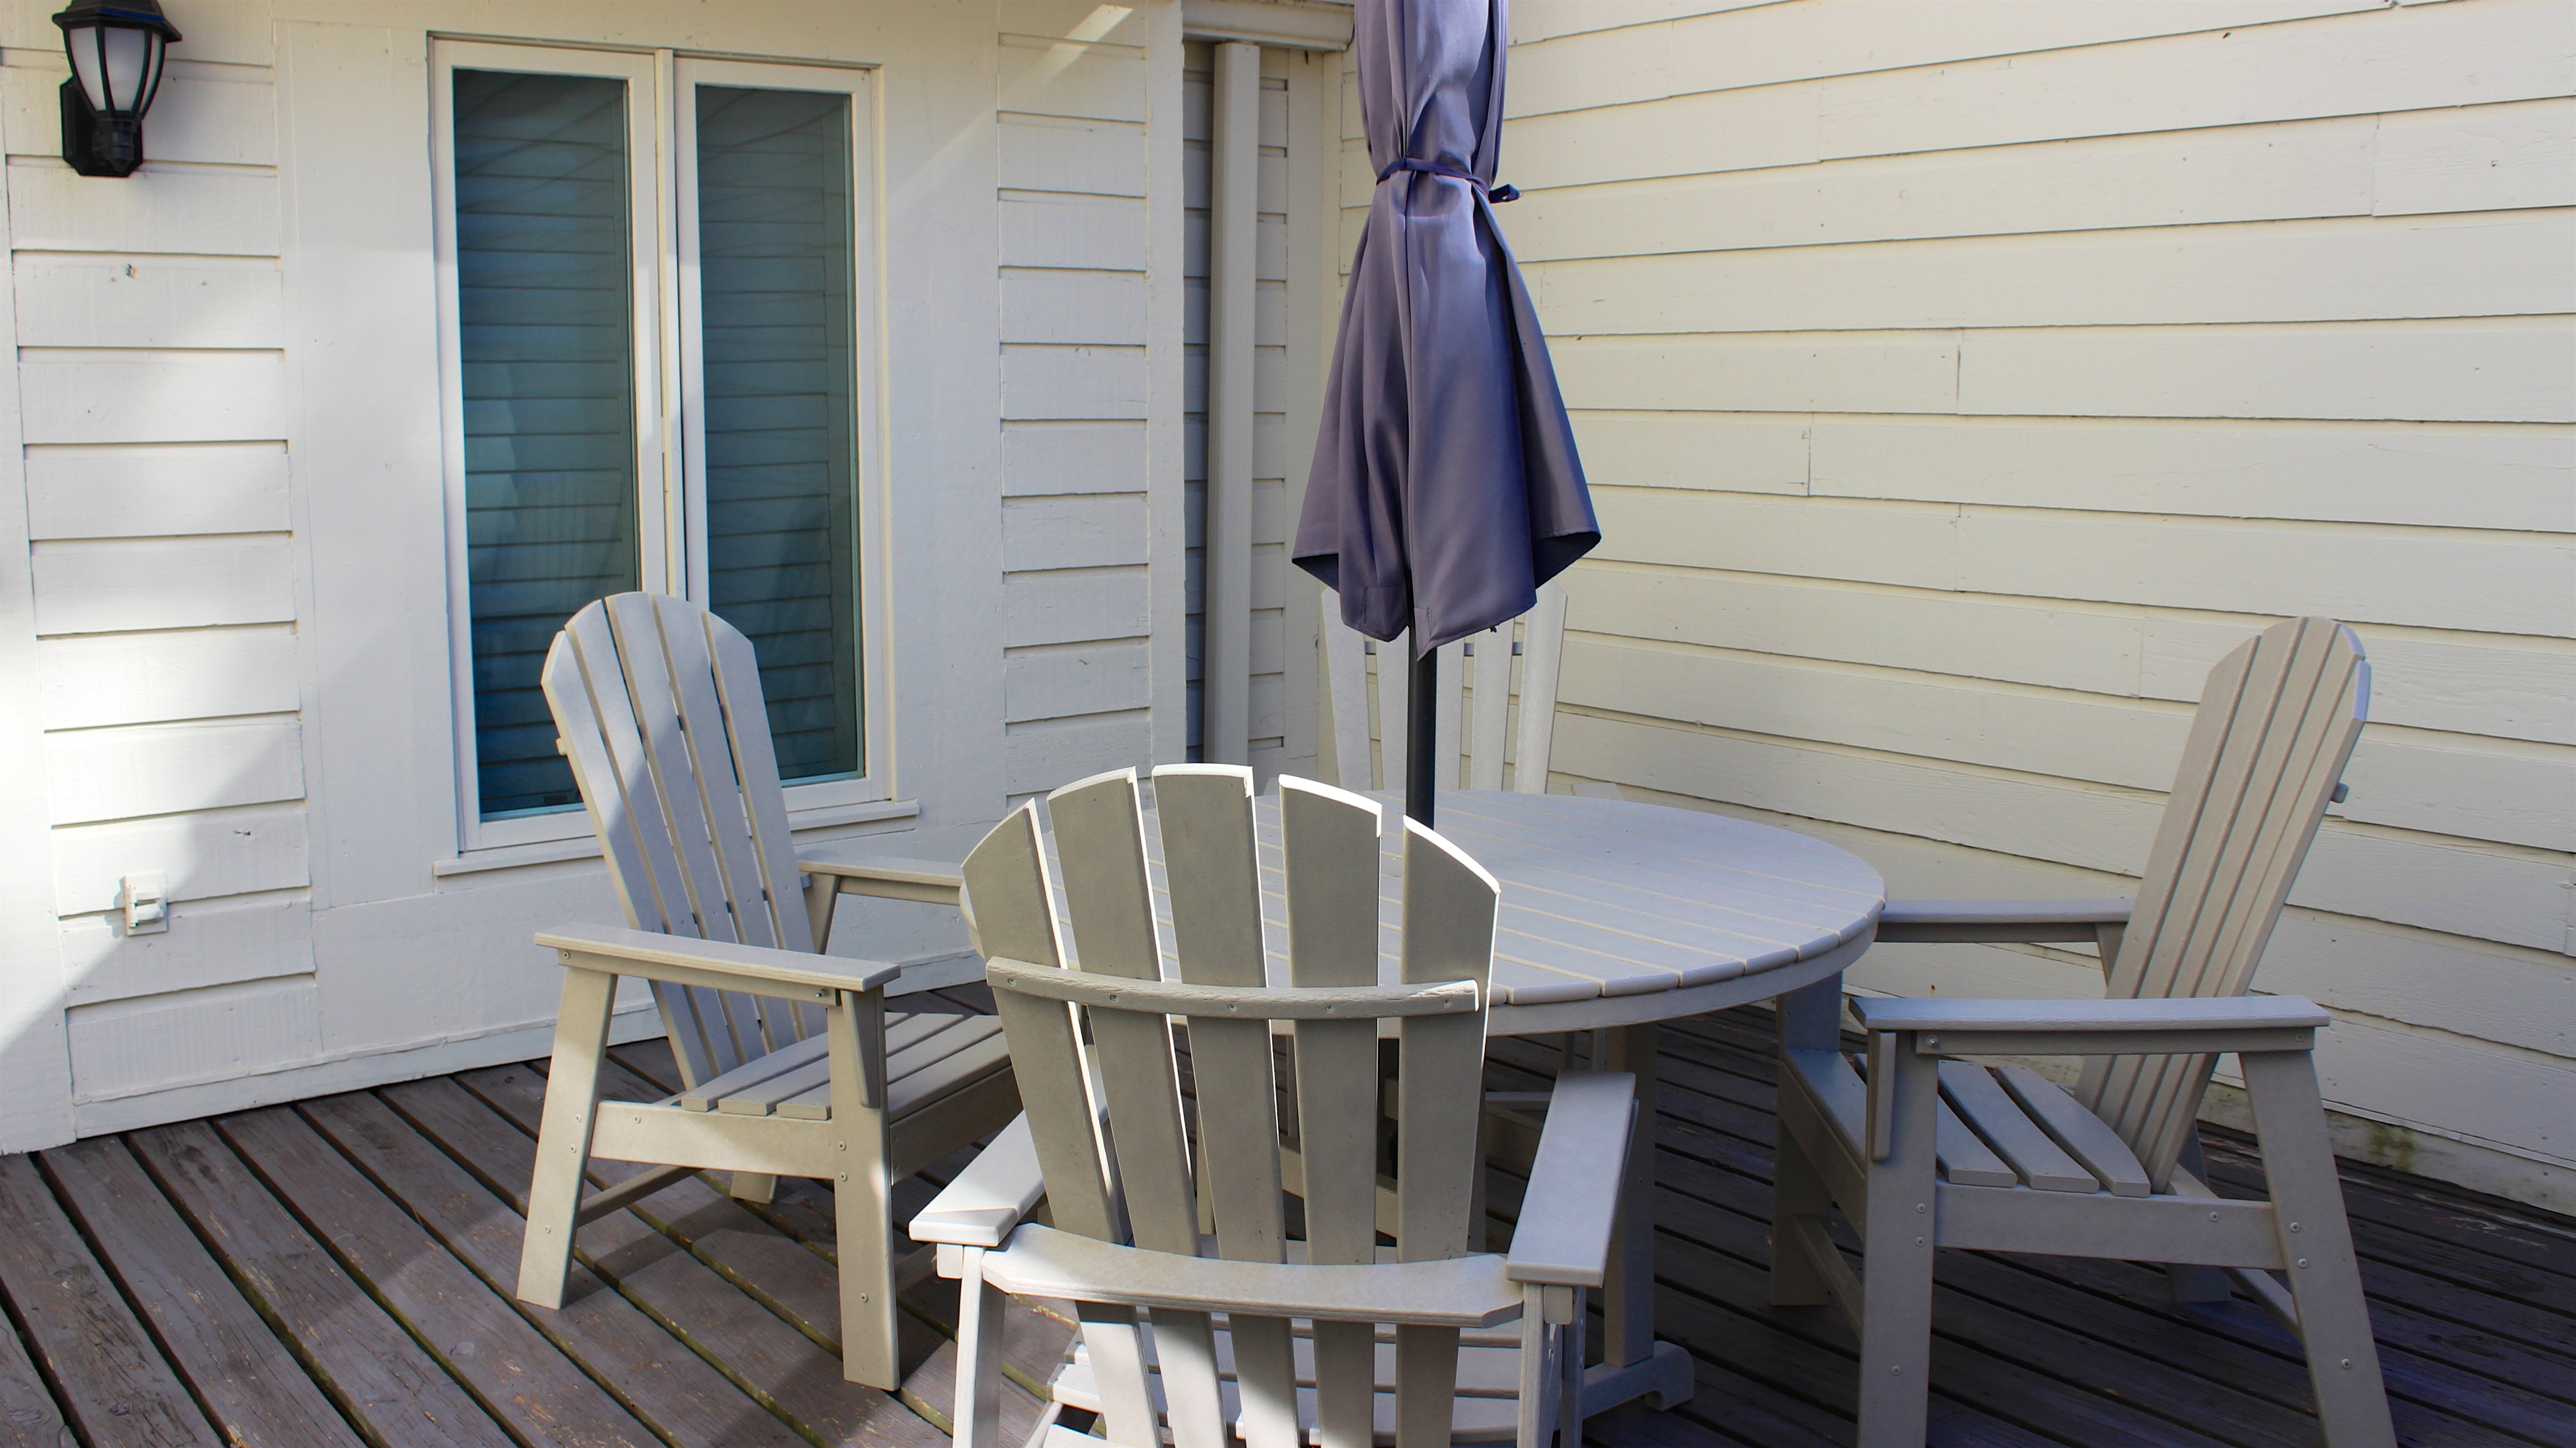 The entry porch has a table under the treed landscaping.